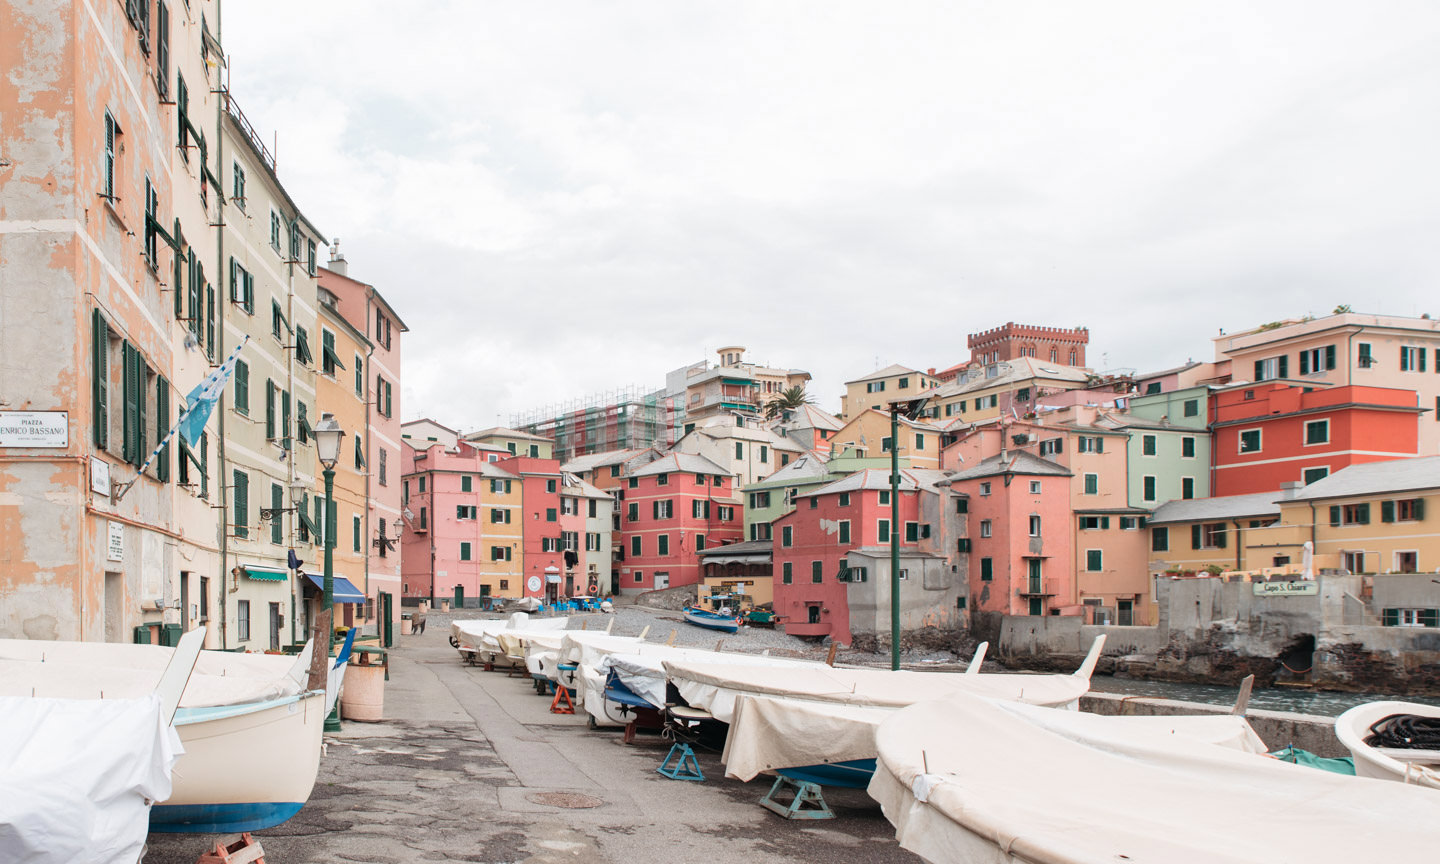 Blog-Mode-And-The-City-Lifestyle-Italie-Bocadasse-Camogli-Sestri-Levante-3